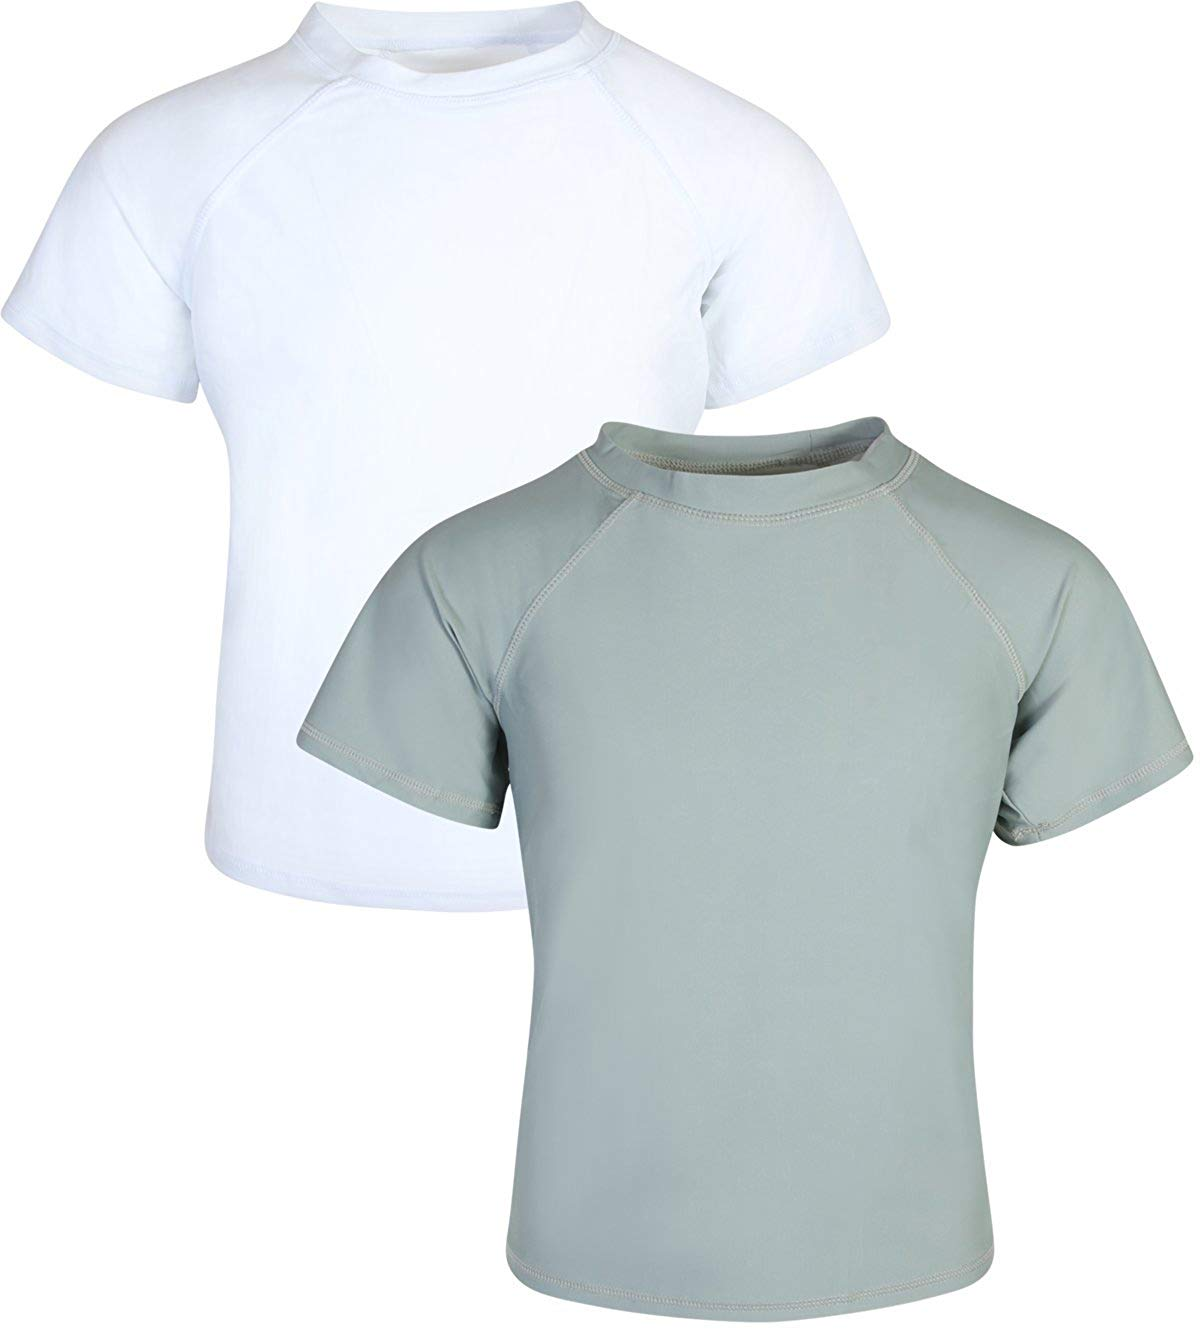 84030bf435 Get Quotations · Ingear Swim Boy's Short Sleeve Rash Guard UPF 50+ Shirt (2  Pack)